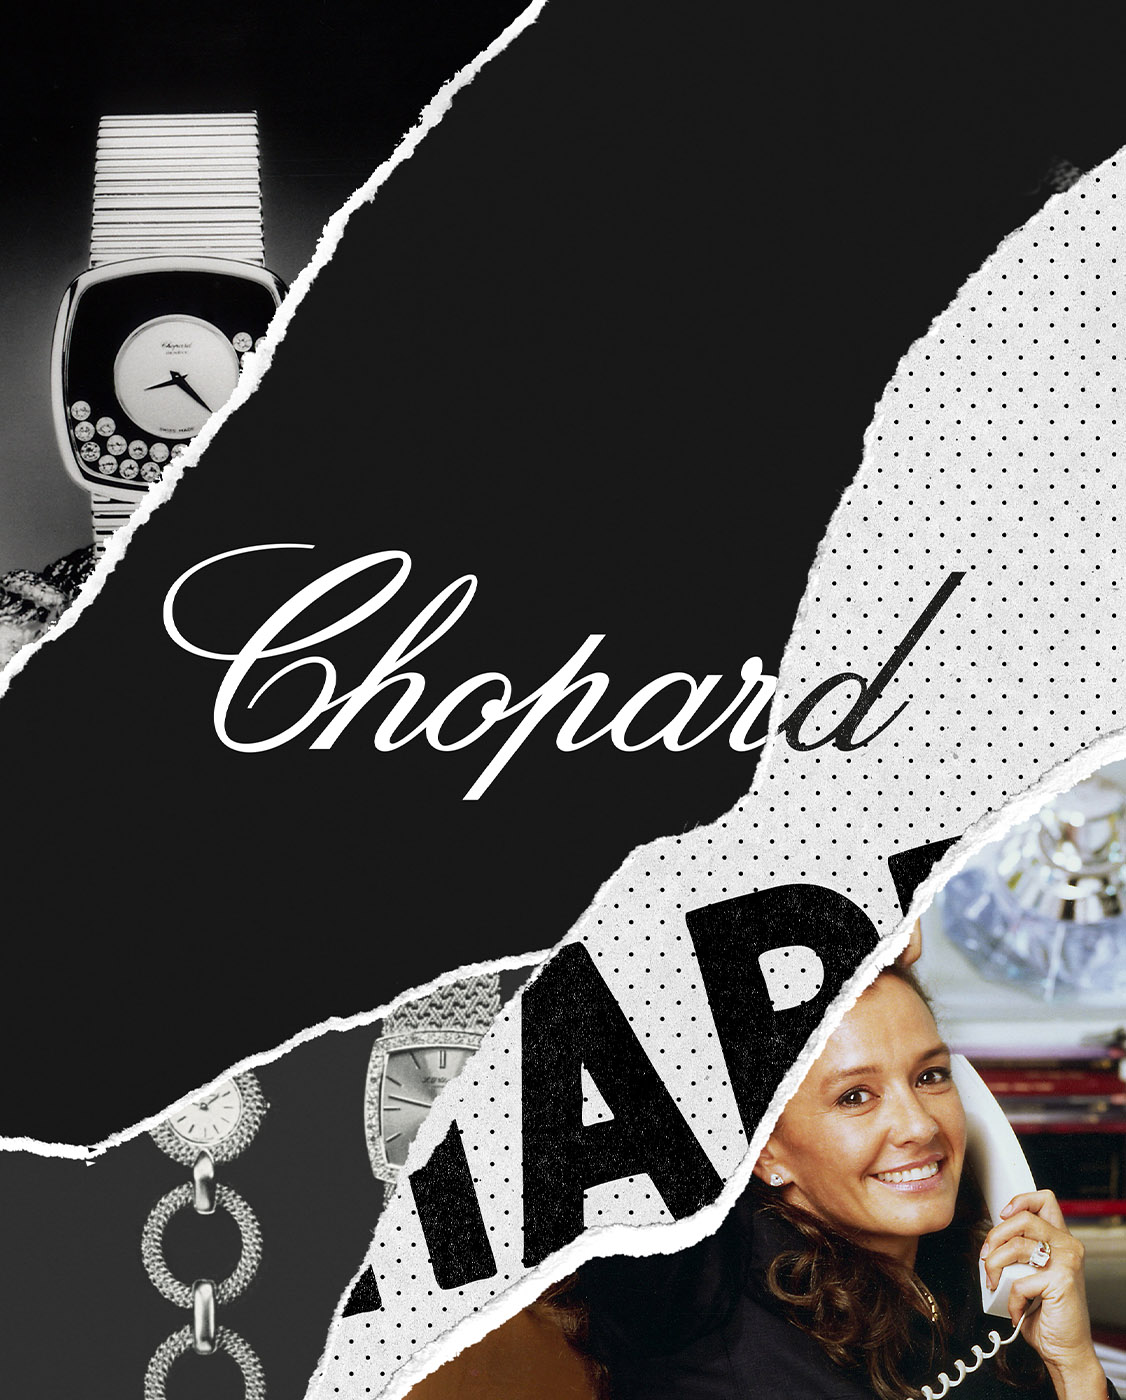 chopard graphic design